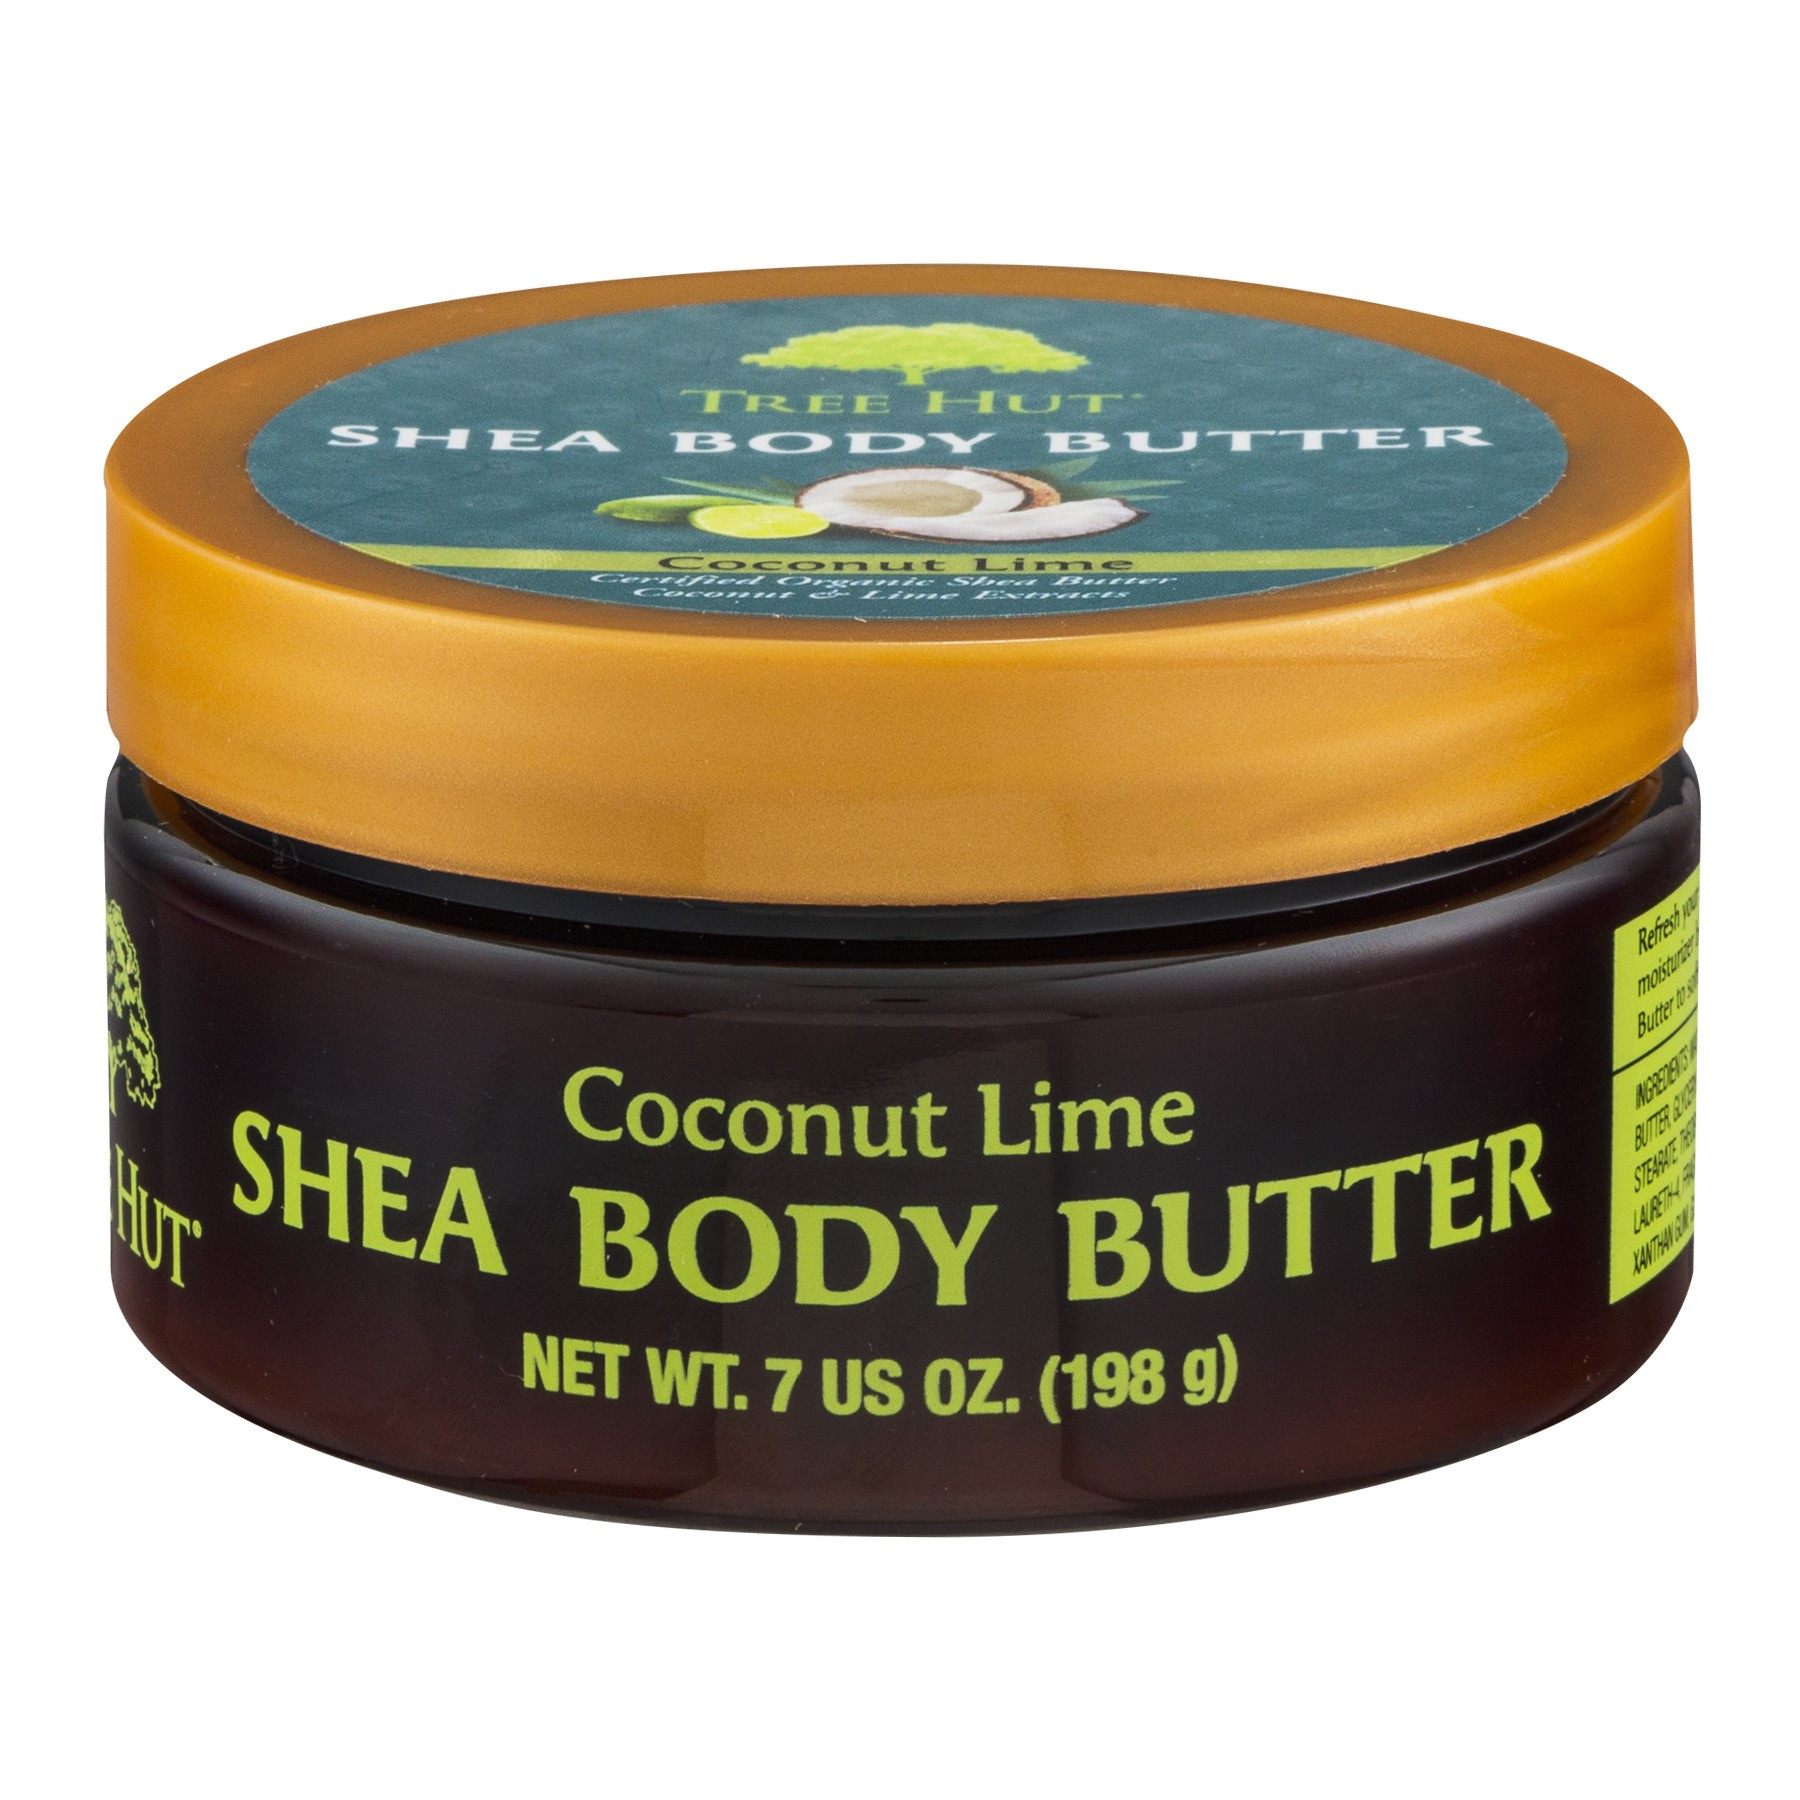 Tree Hut Shea Coconut Lime Body Butter, 7 oz